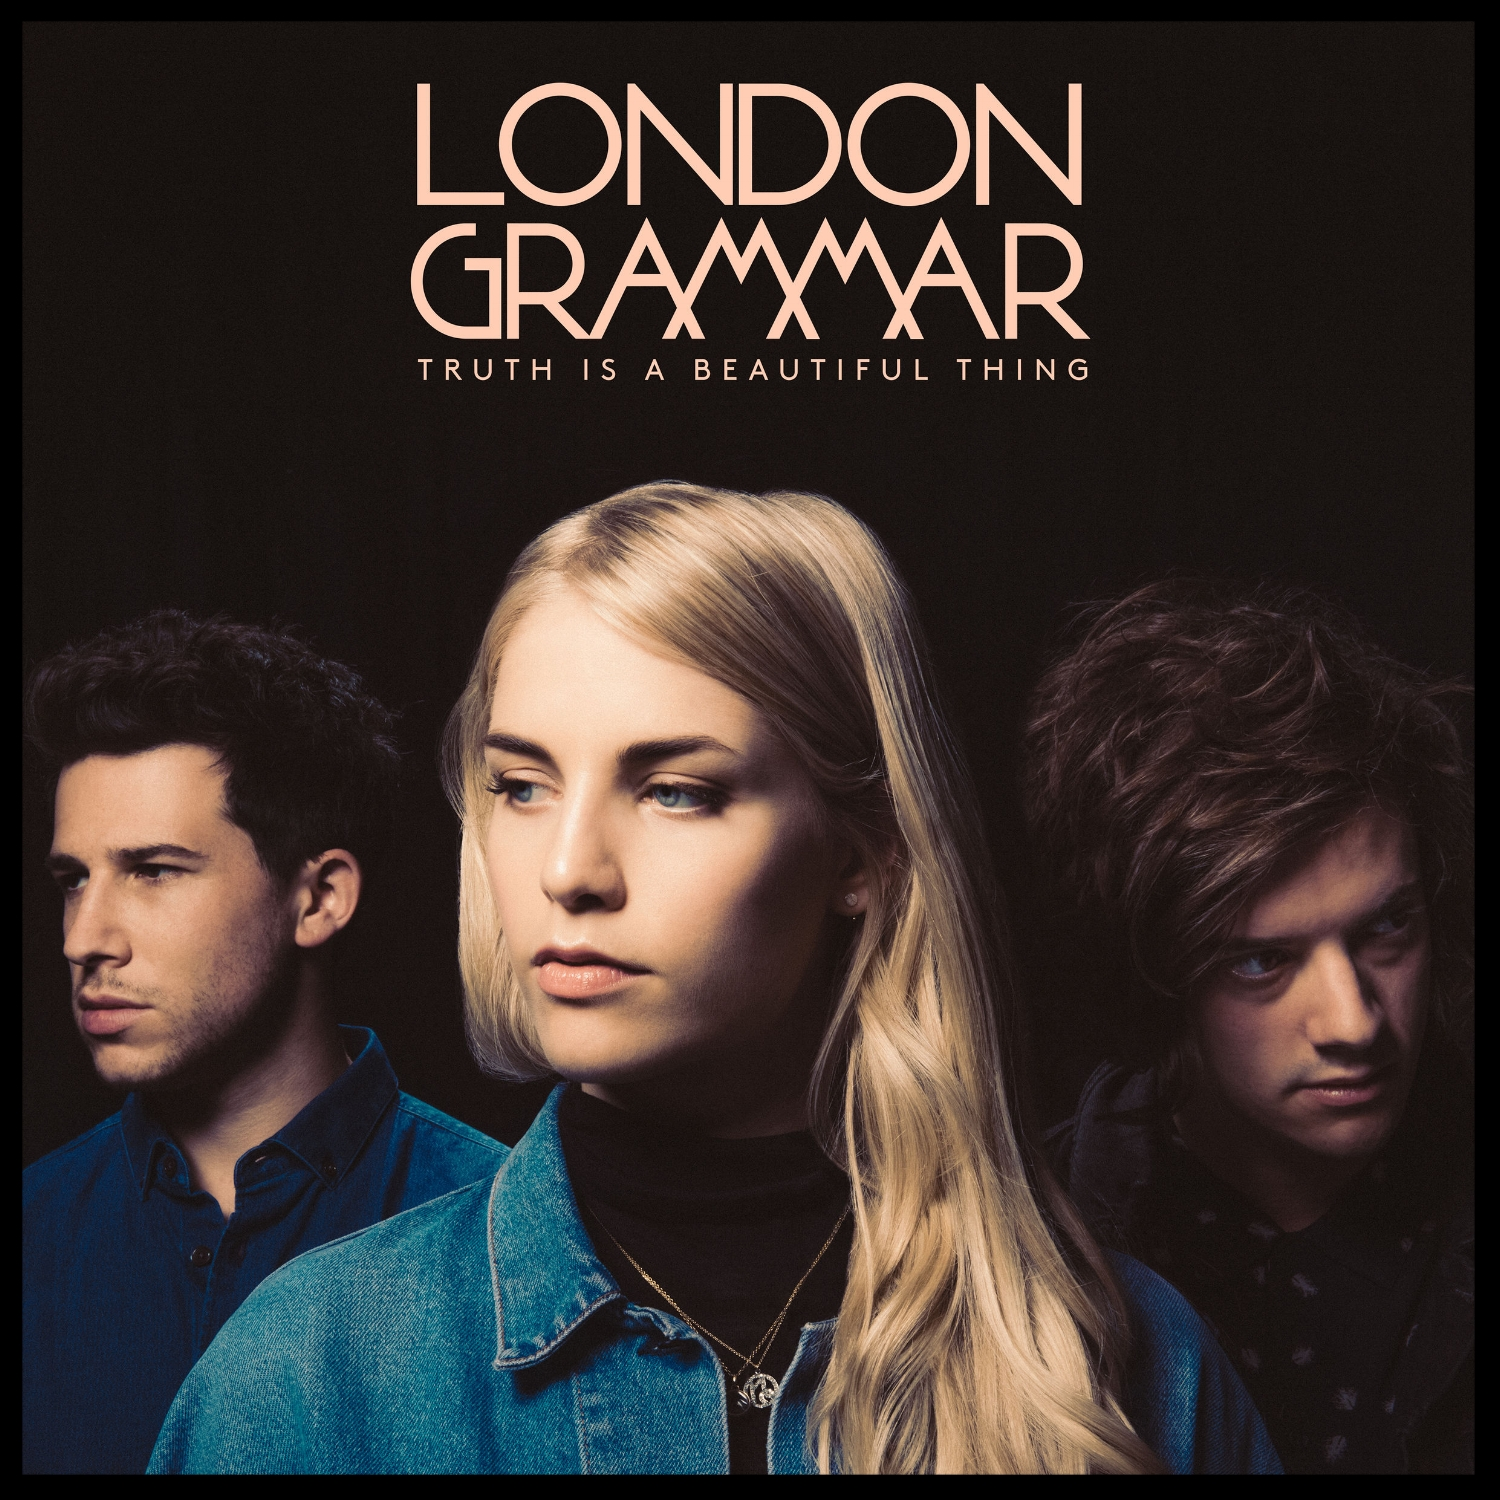 London Grammar Truth Is A Beautiful Thing  Engineering / Mixing (Deluxe Track)